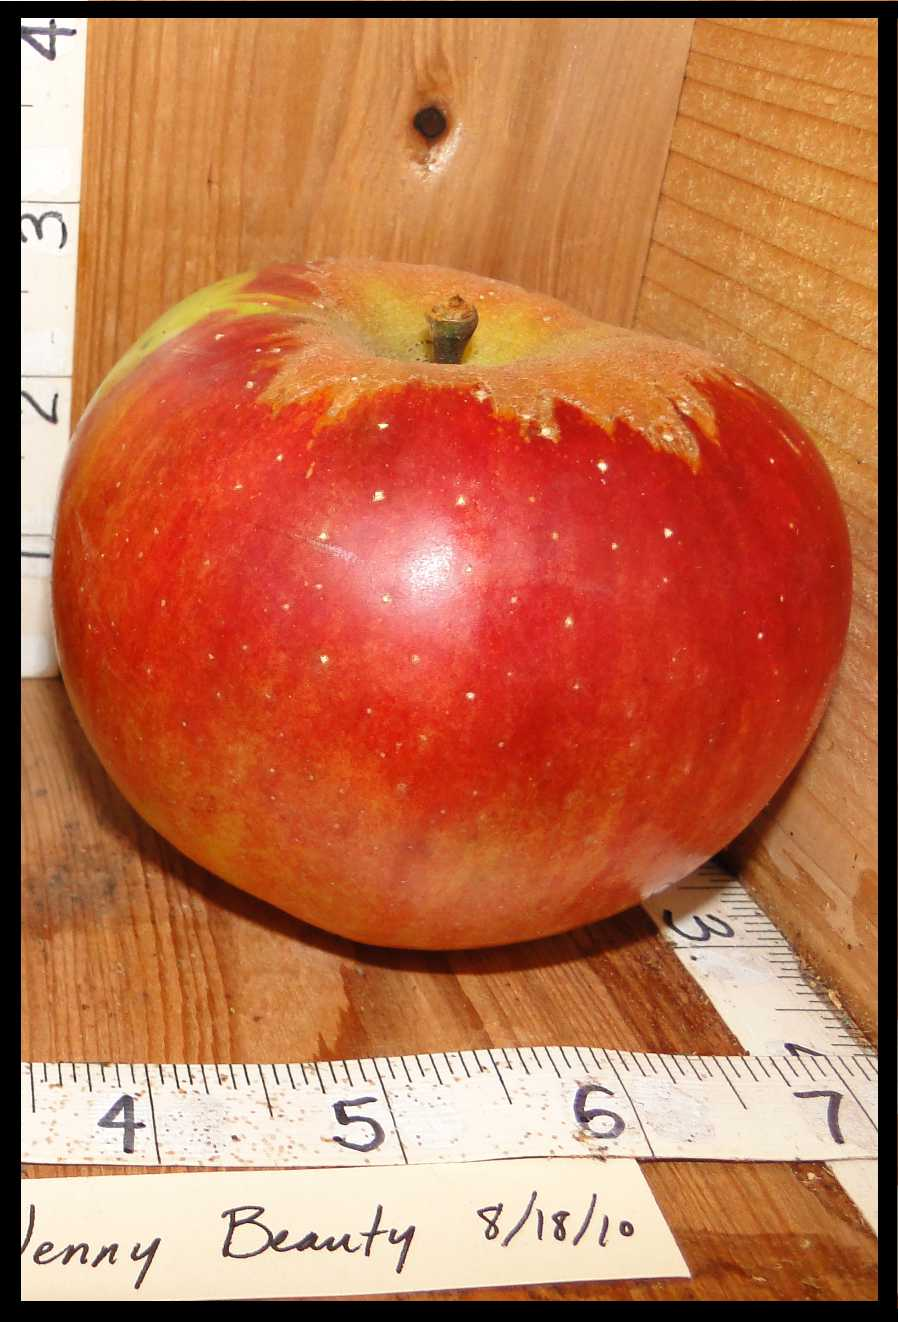 red apple with rough tan skin around stem and with small white spots